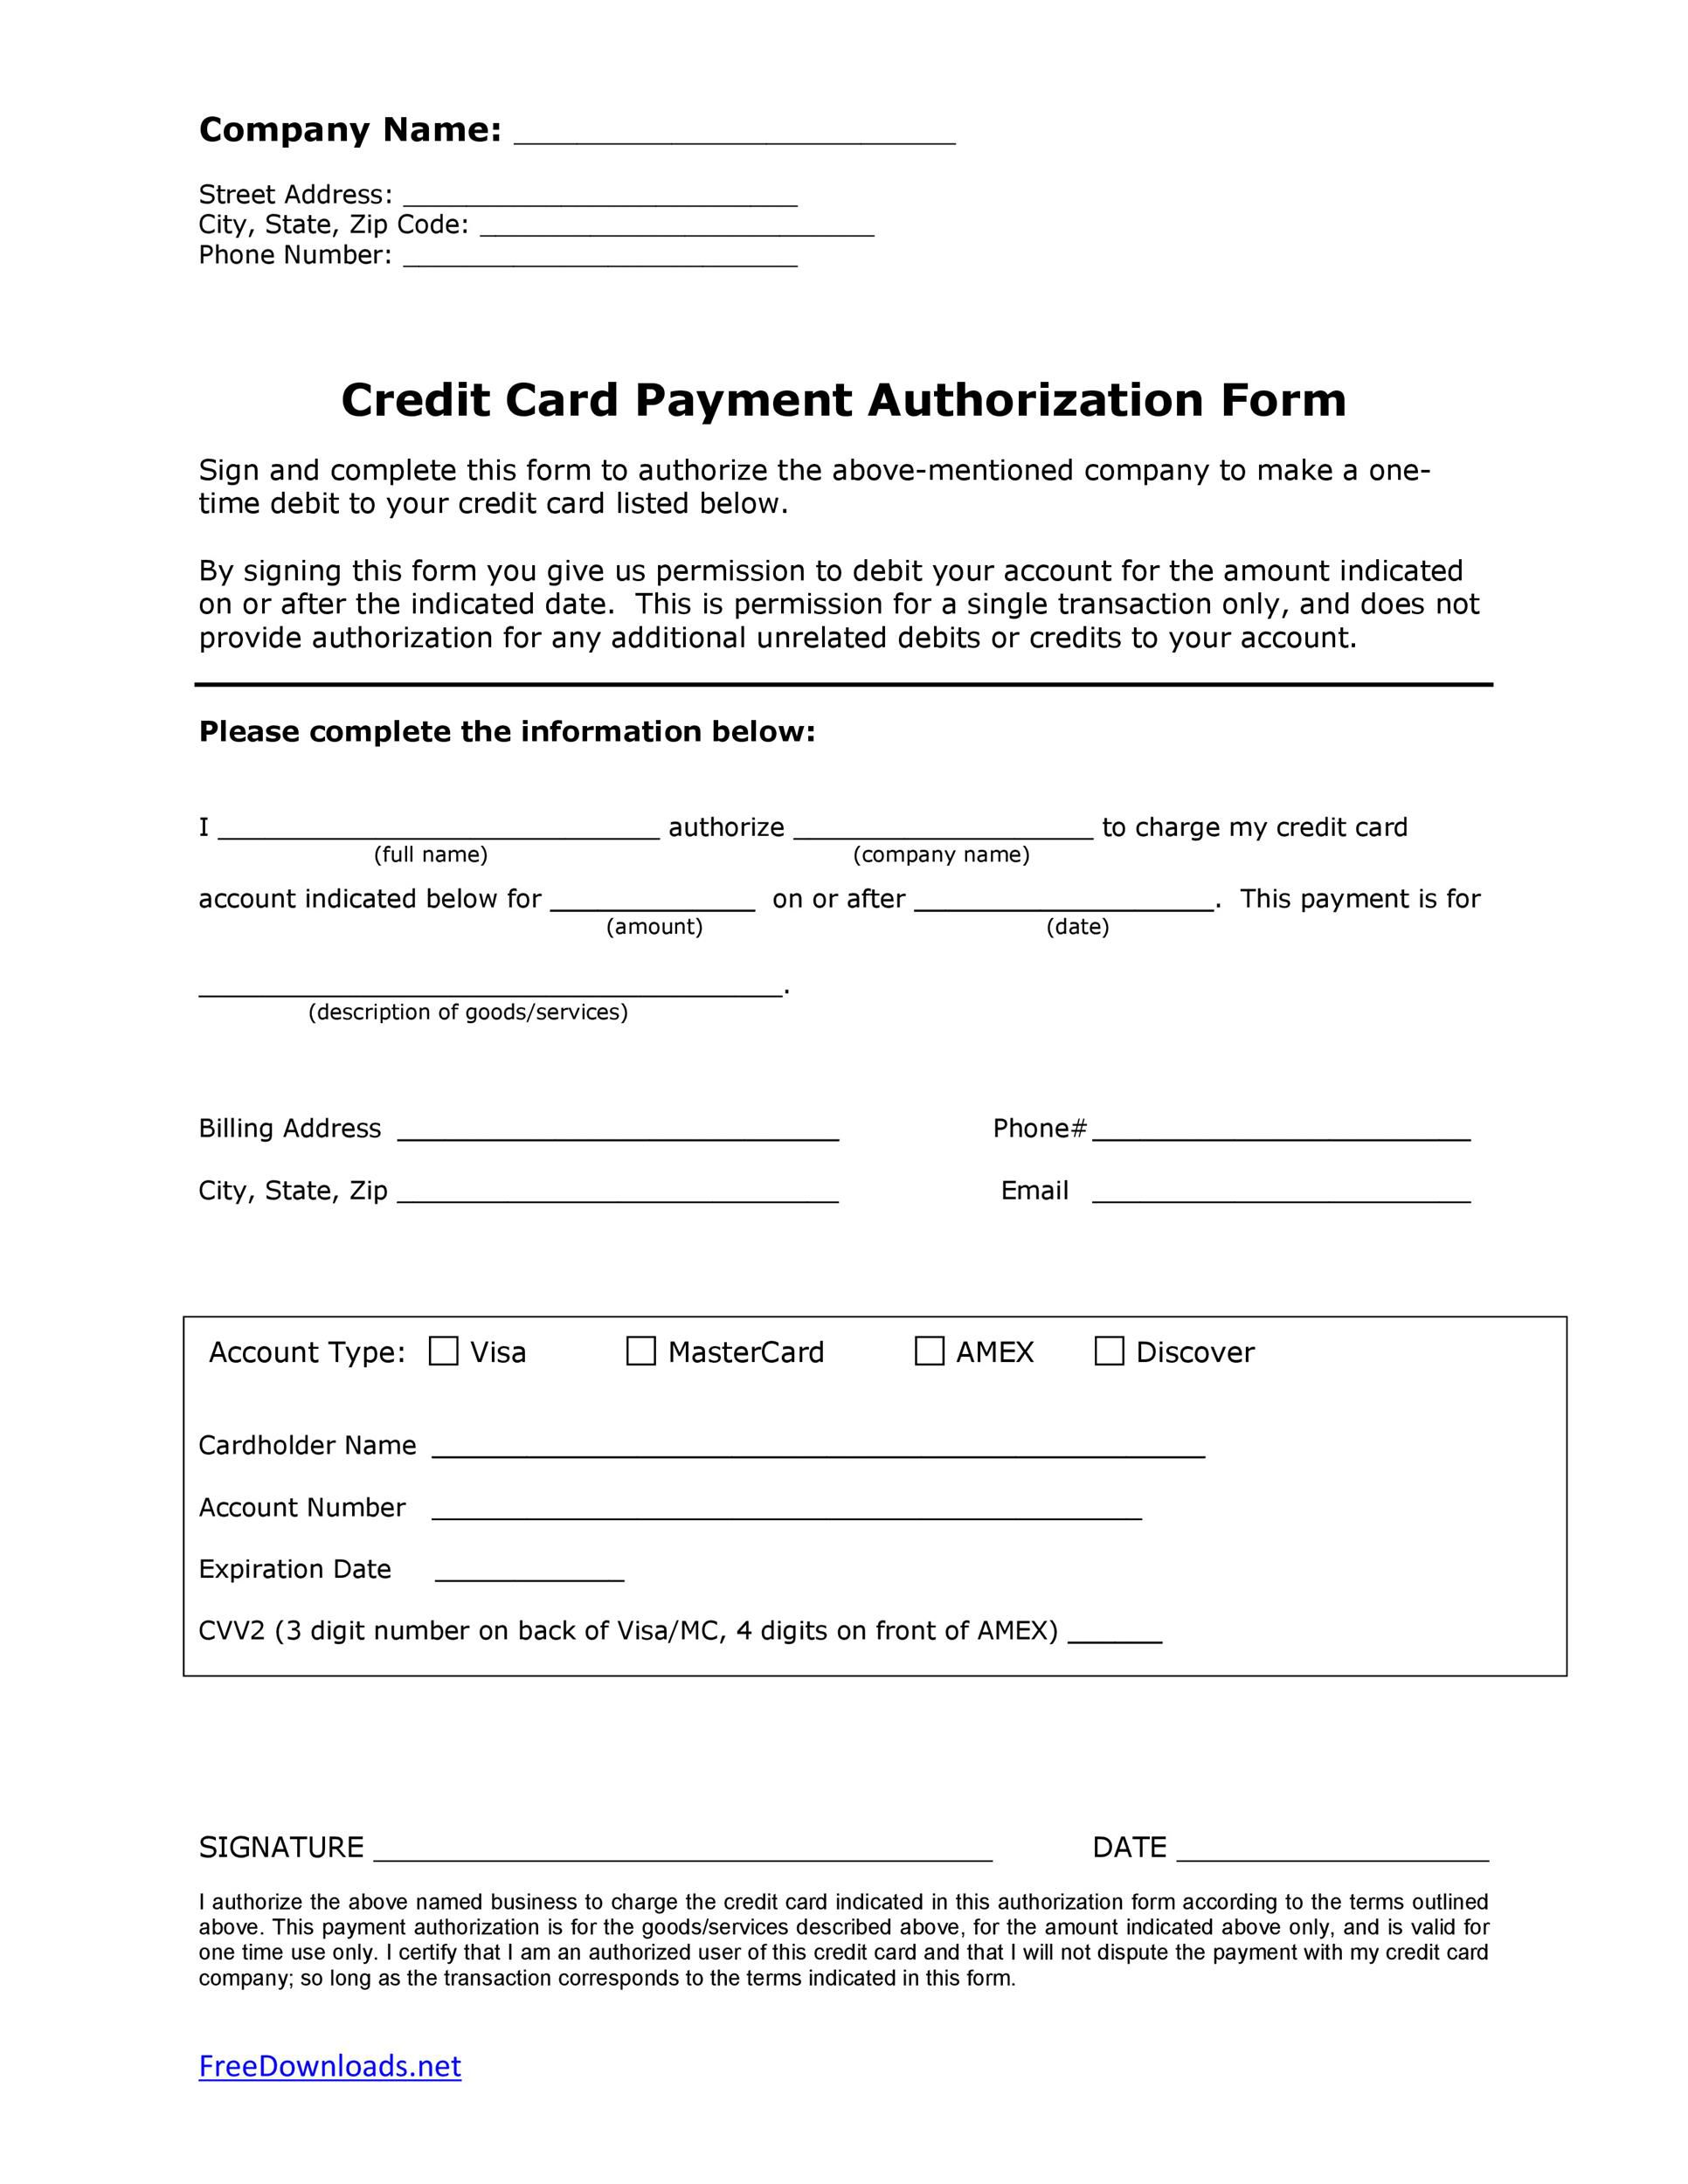 007 Astounding One Time Credit Card Payment Authorization Form Template Example Full